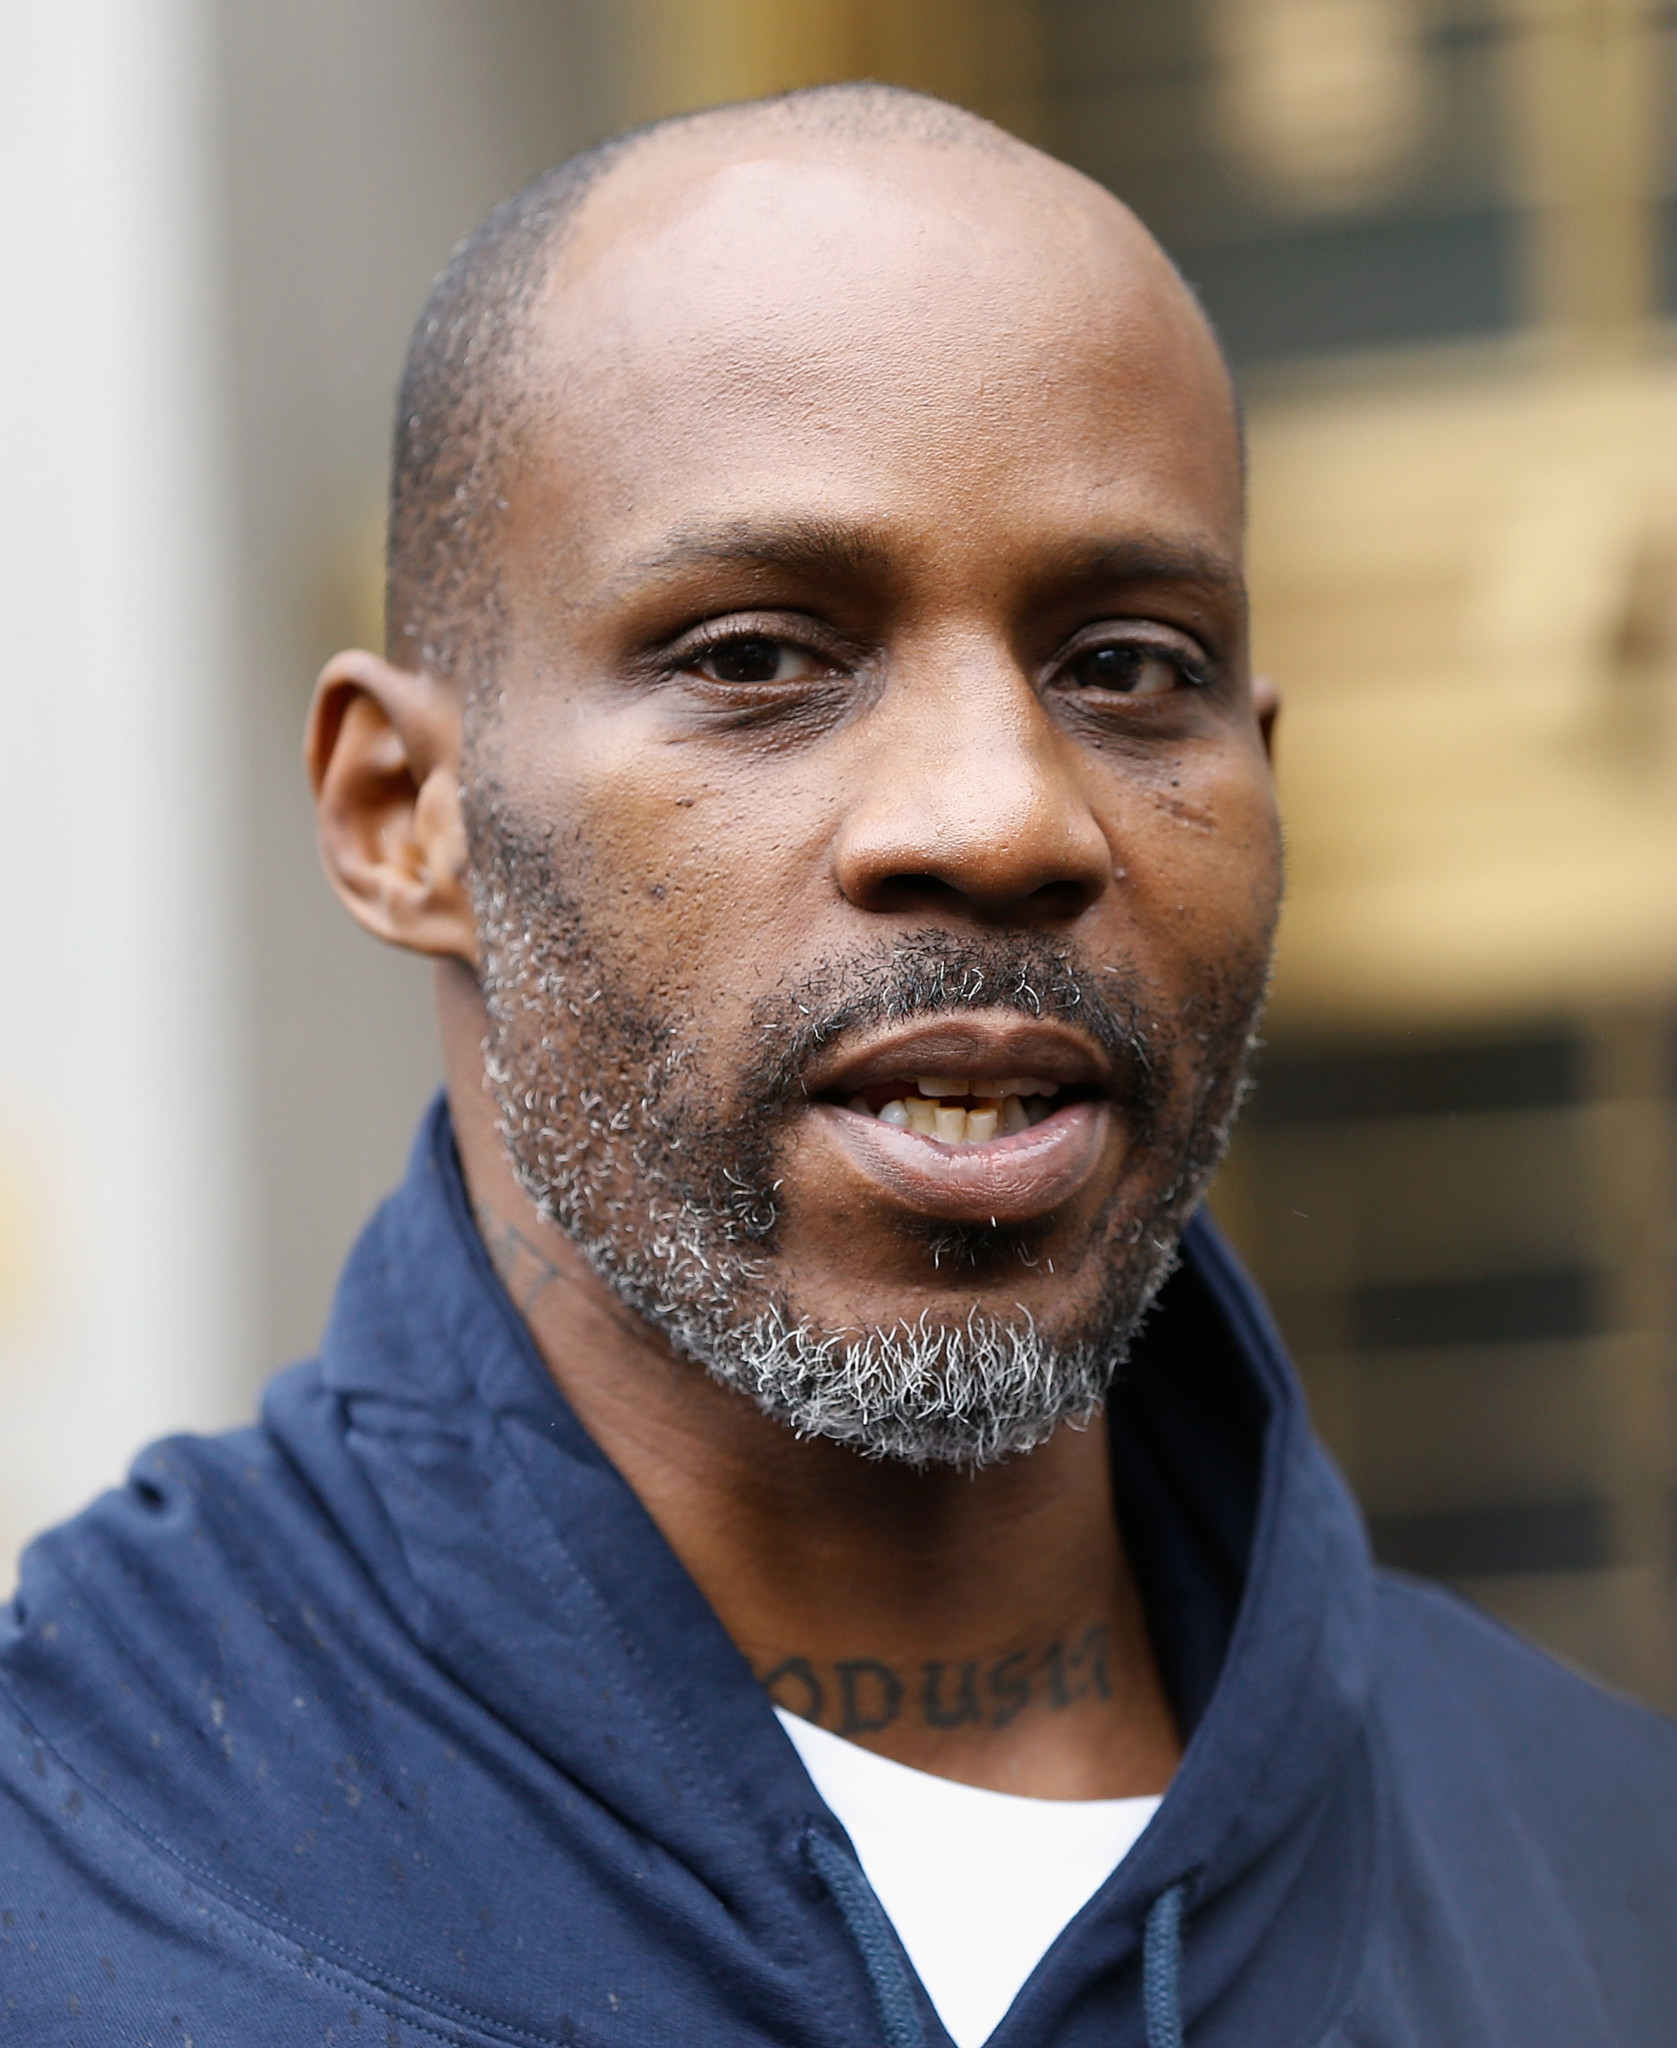 Photo of RAPPER DMX SENTENCED TO ONE YEAR IN PRISON FOR TAX FRAUD